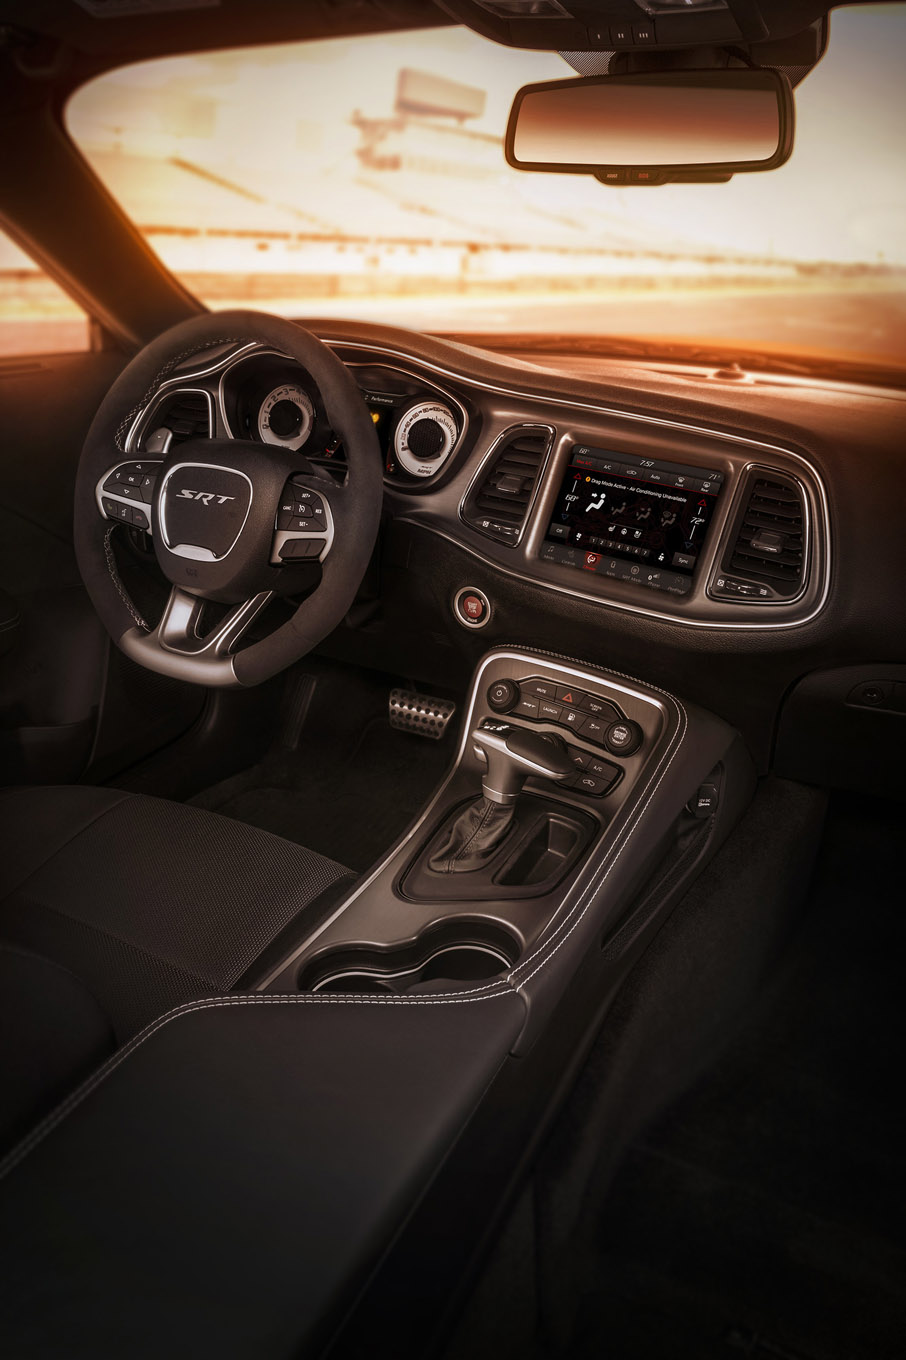 Interior of the 2018 Dodge Challenger SRT Demon